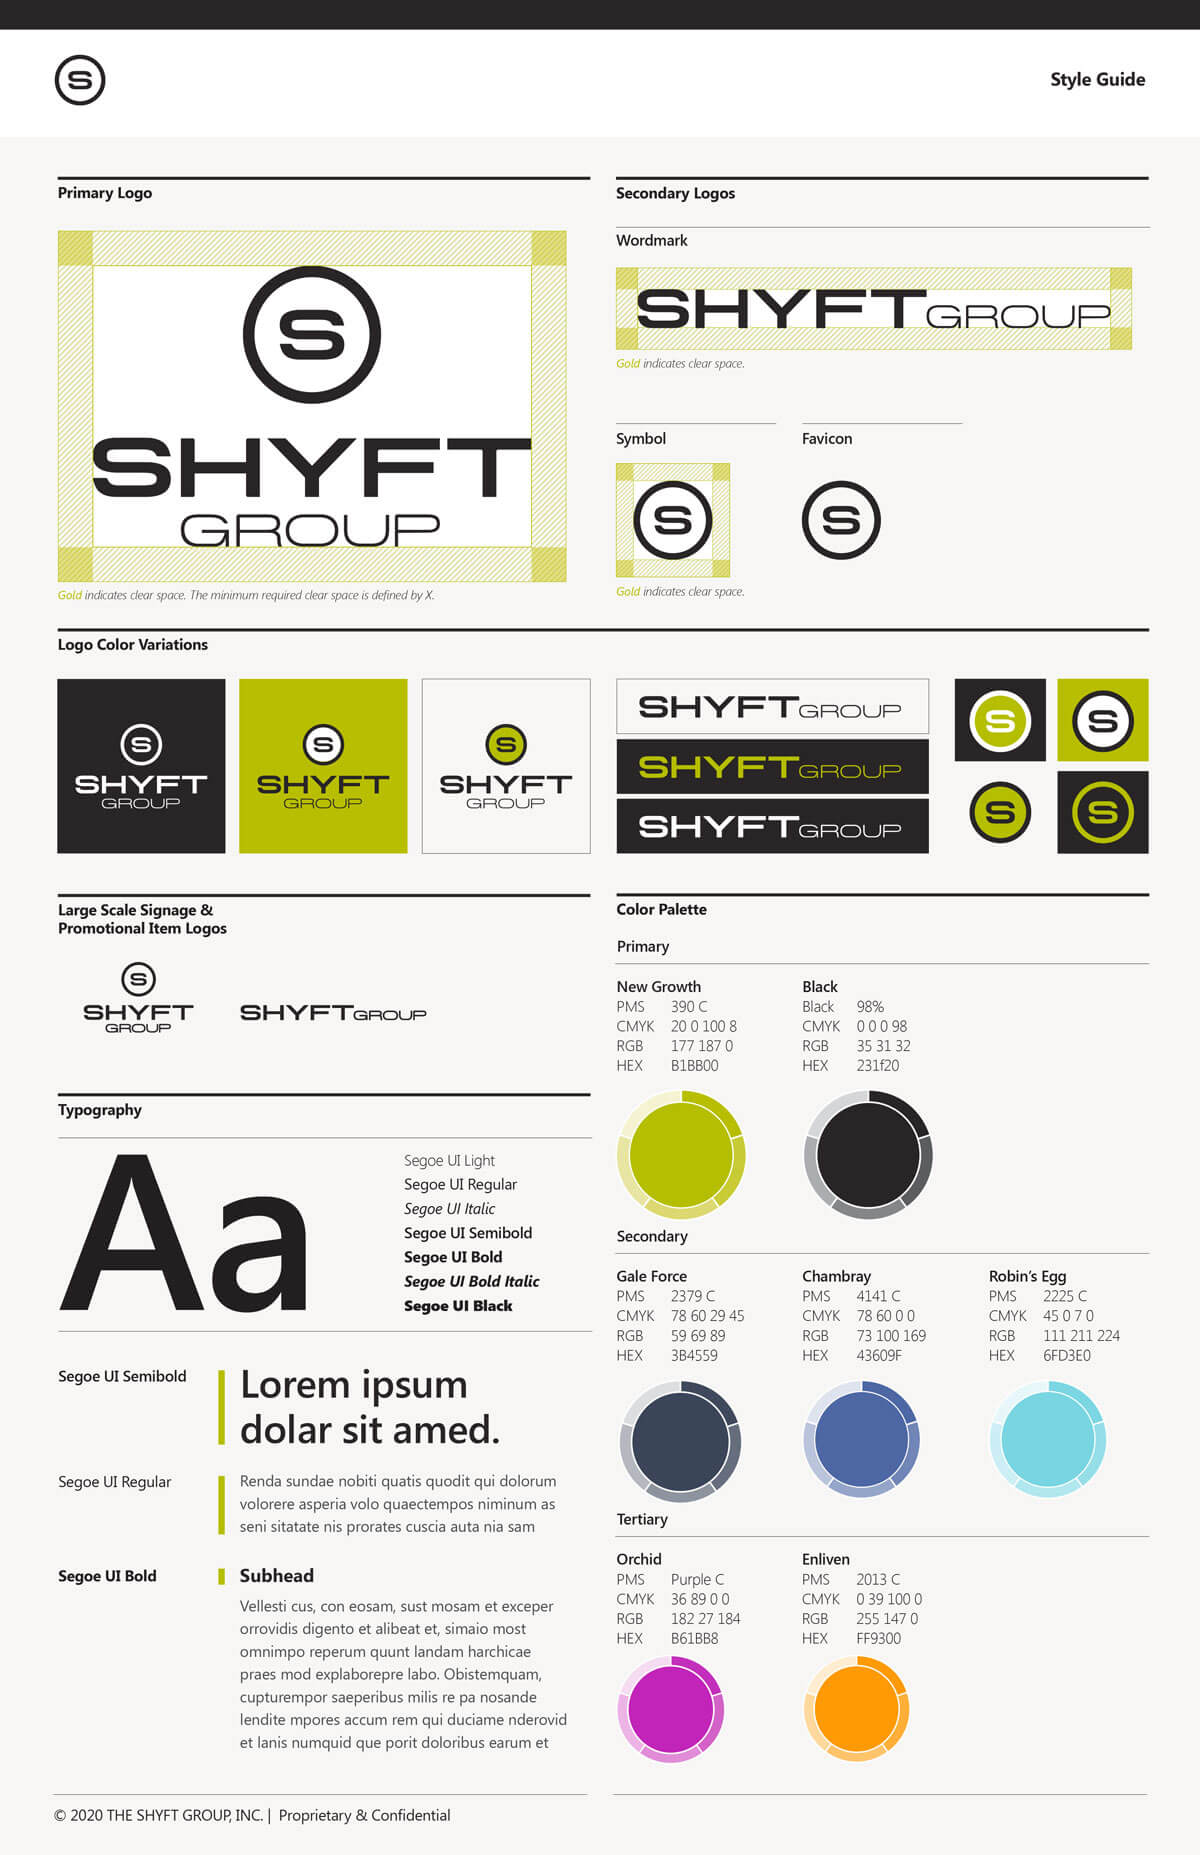 The Shyft Group web style guide